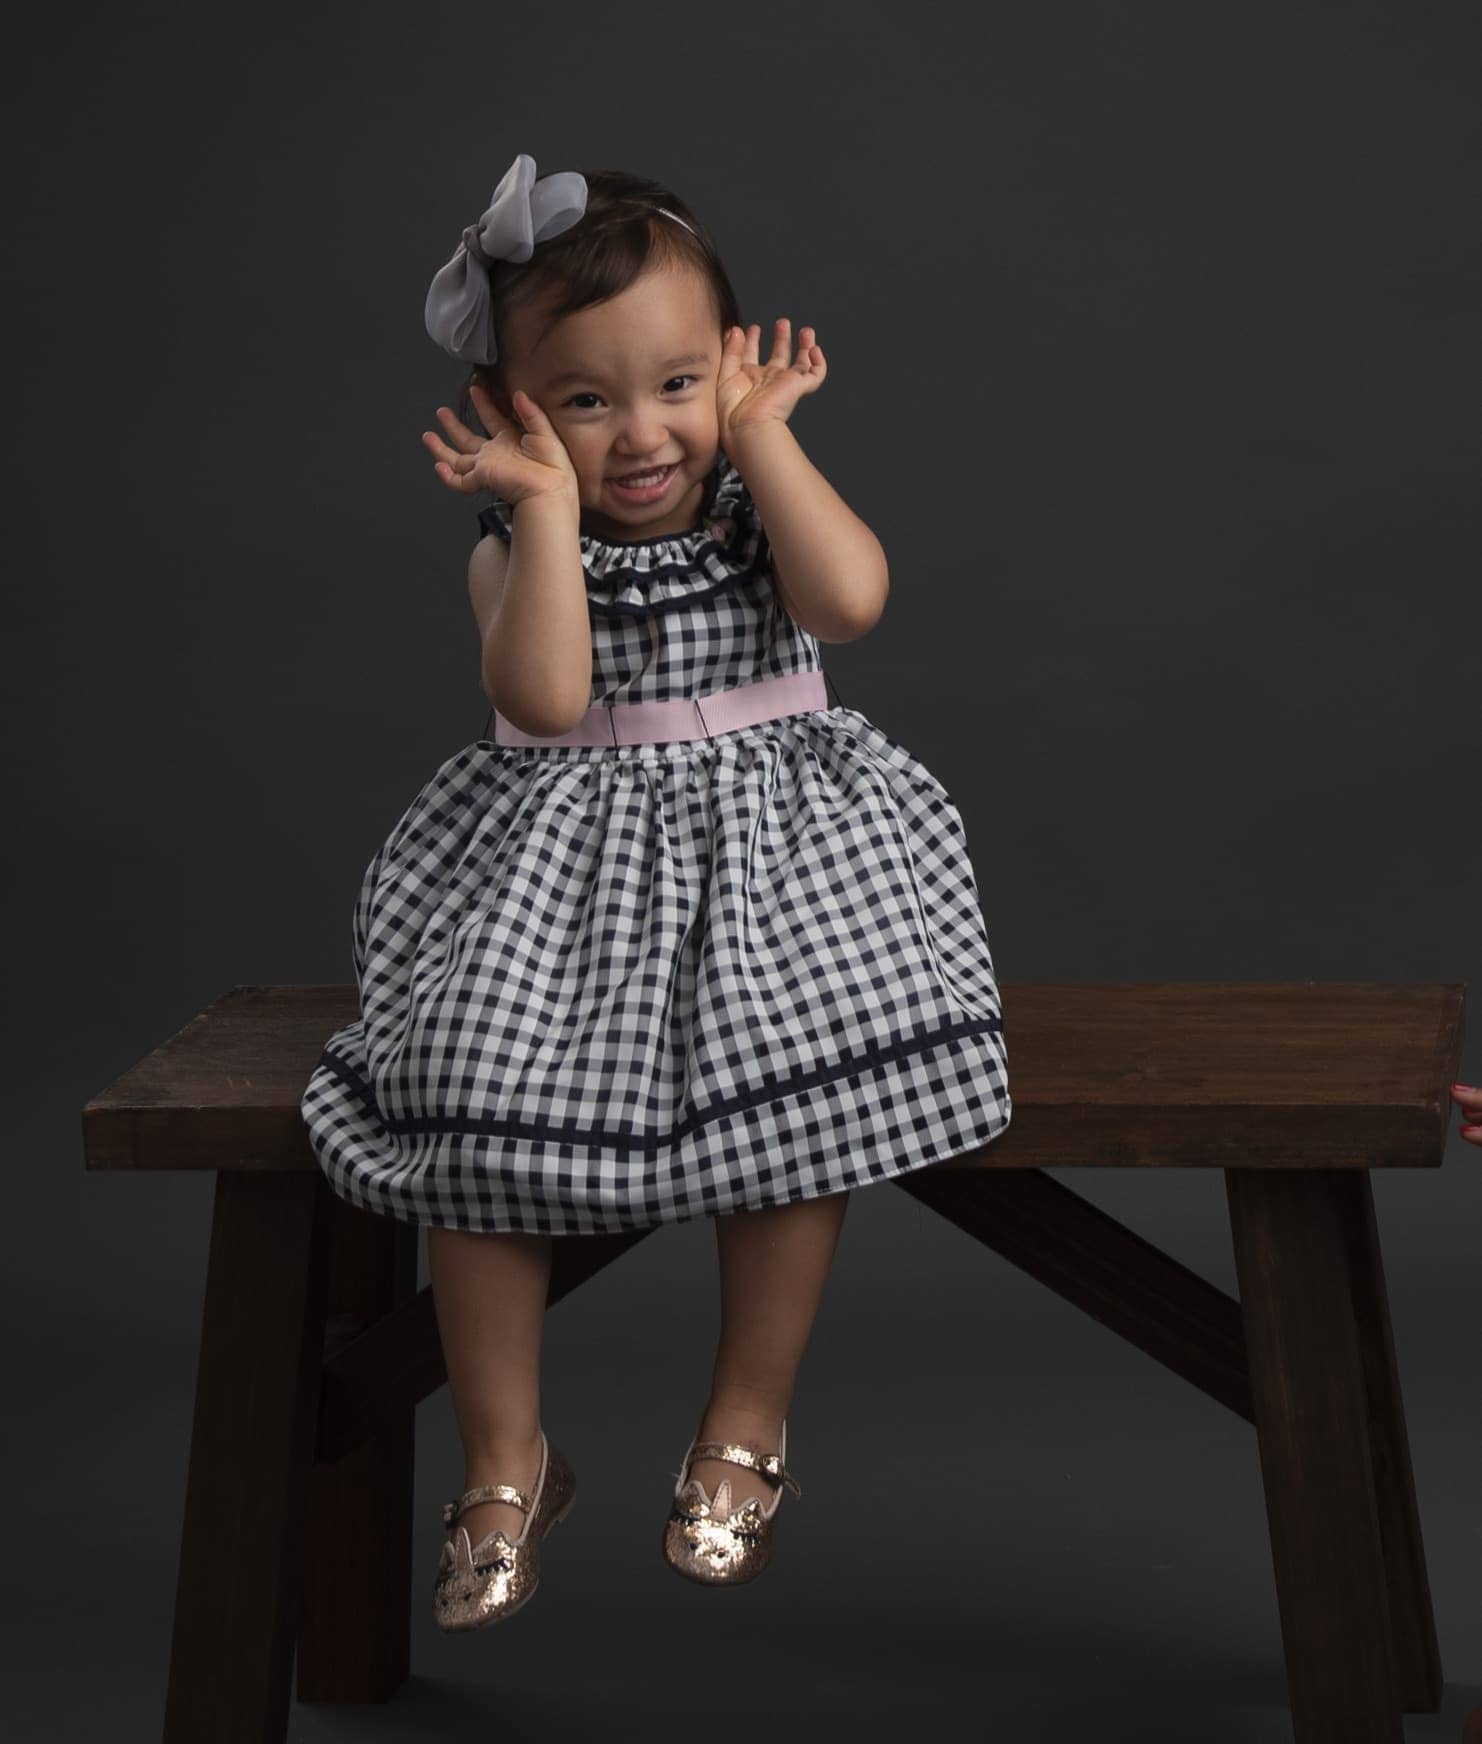 diegosphotography,home, photography services in Atlanta, Kids Photography